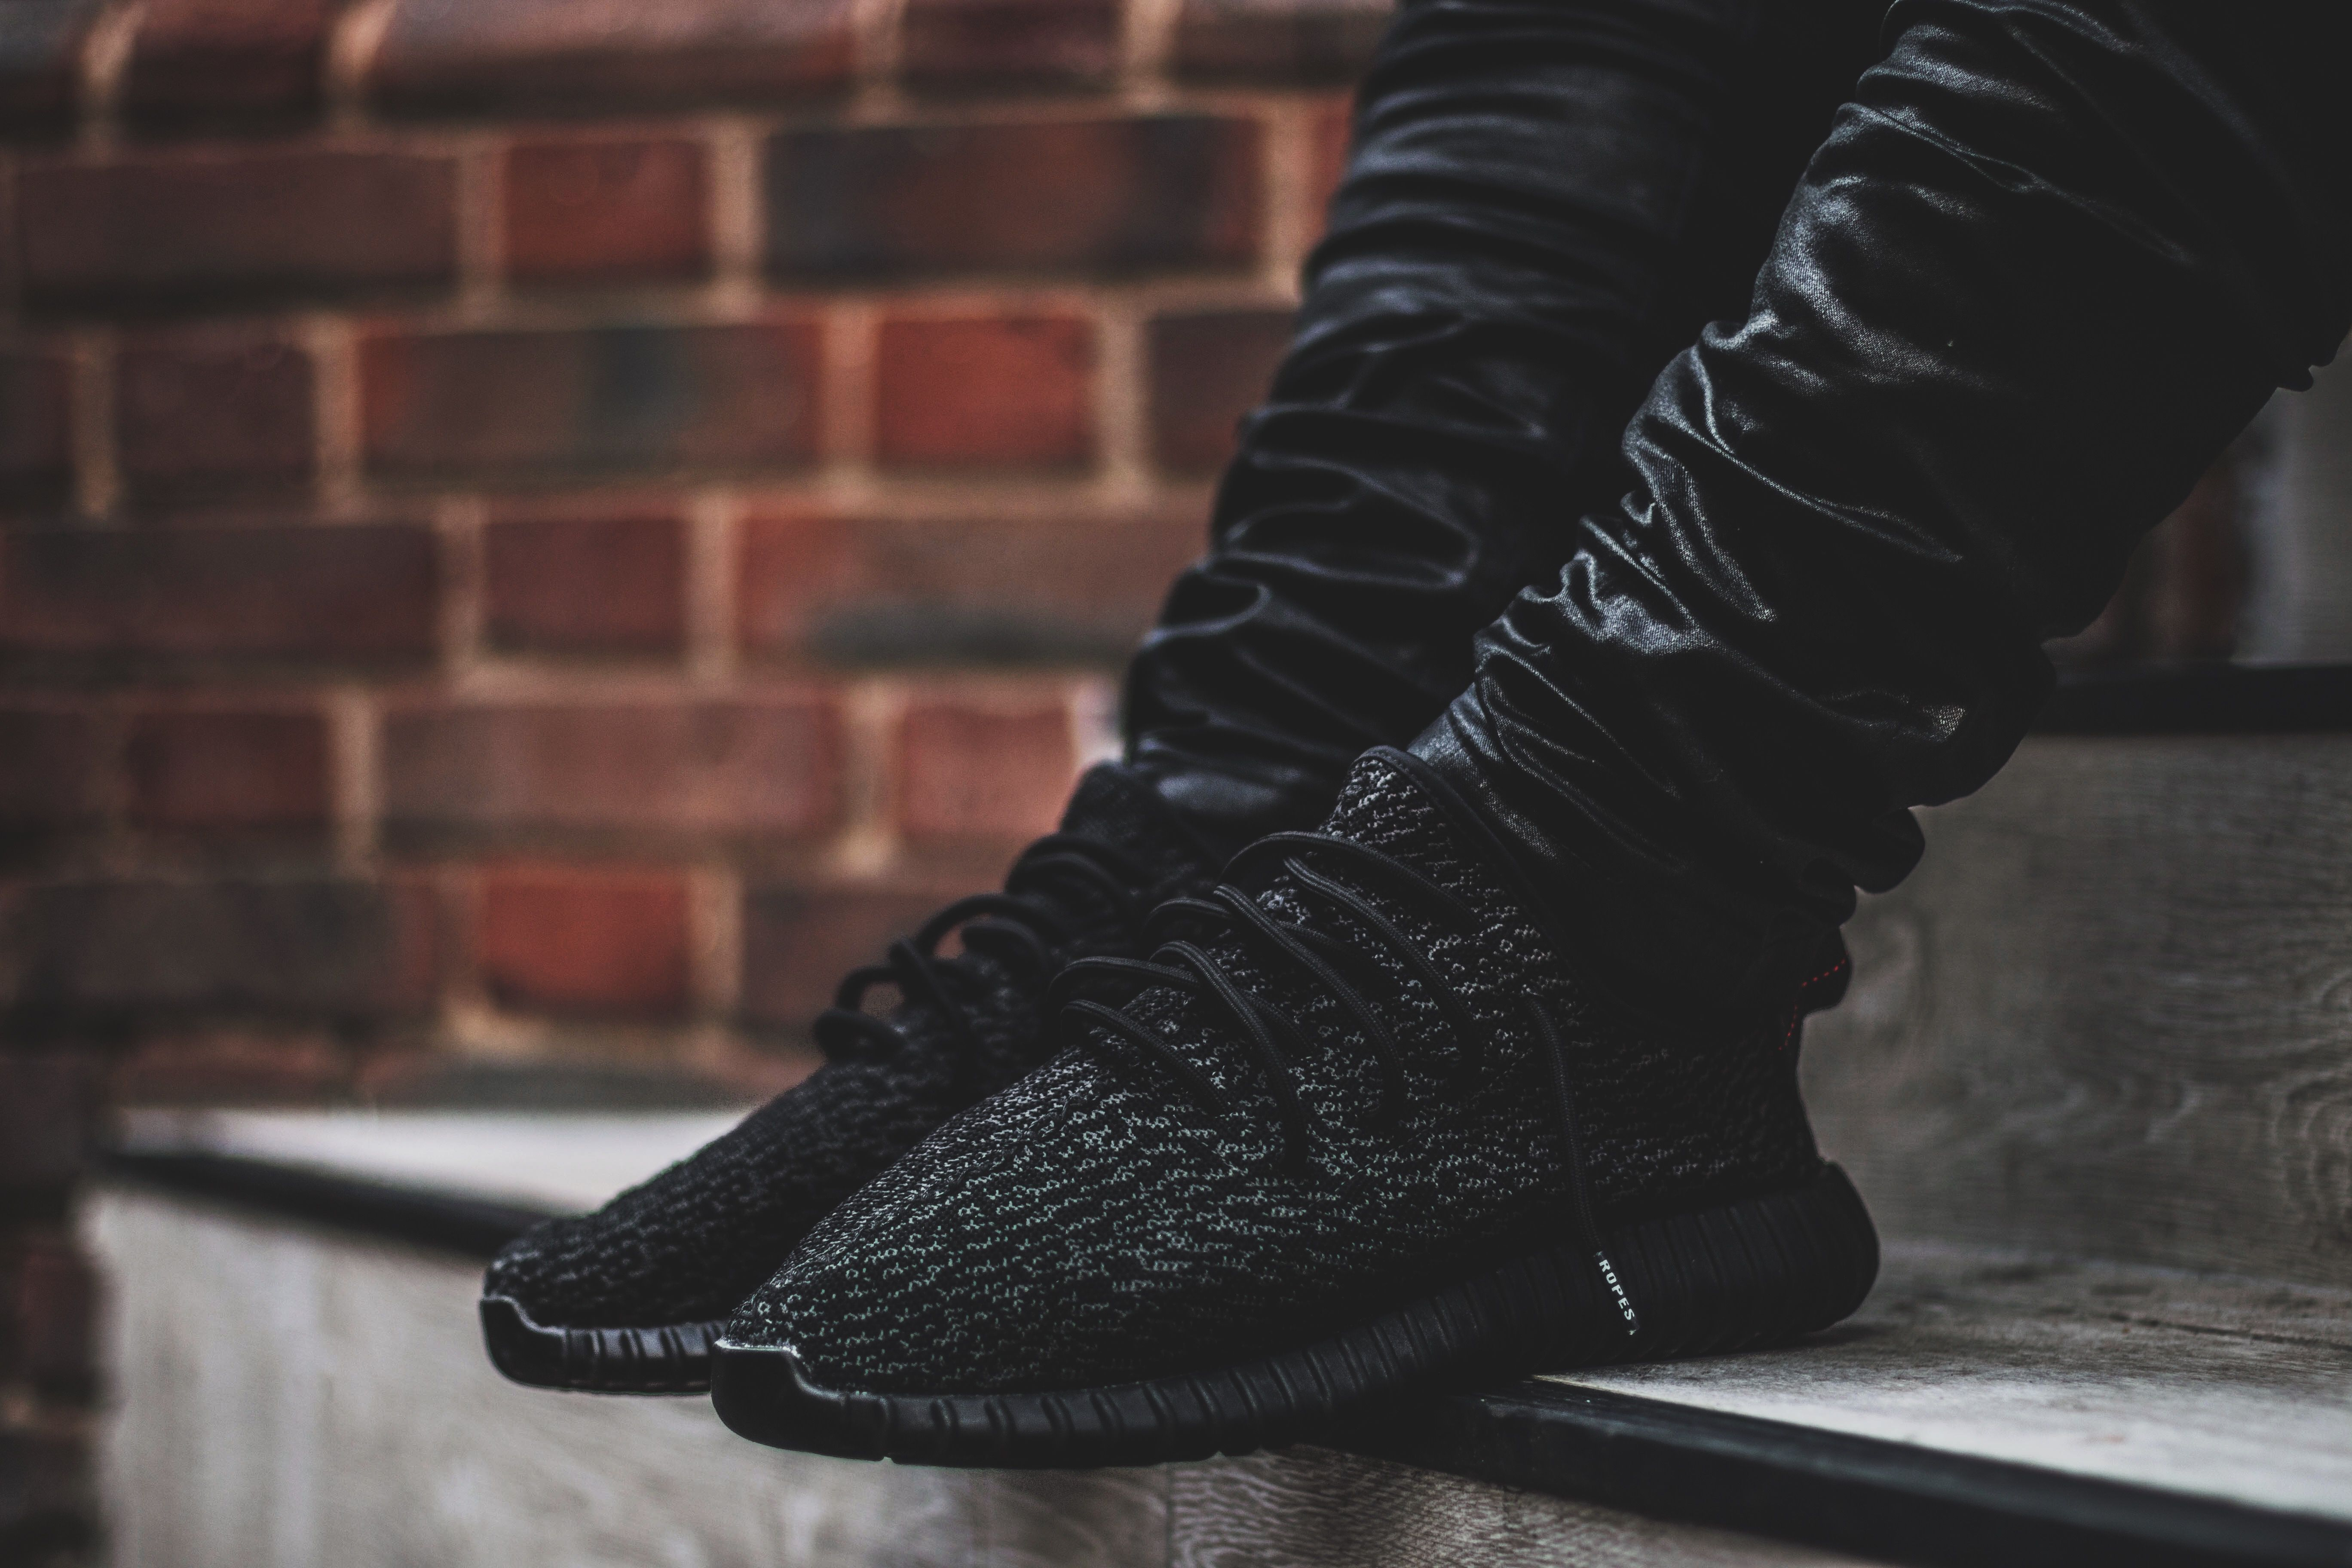 adidas yeezy 350 boost black pirate on feet adidas superstar men black and golden